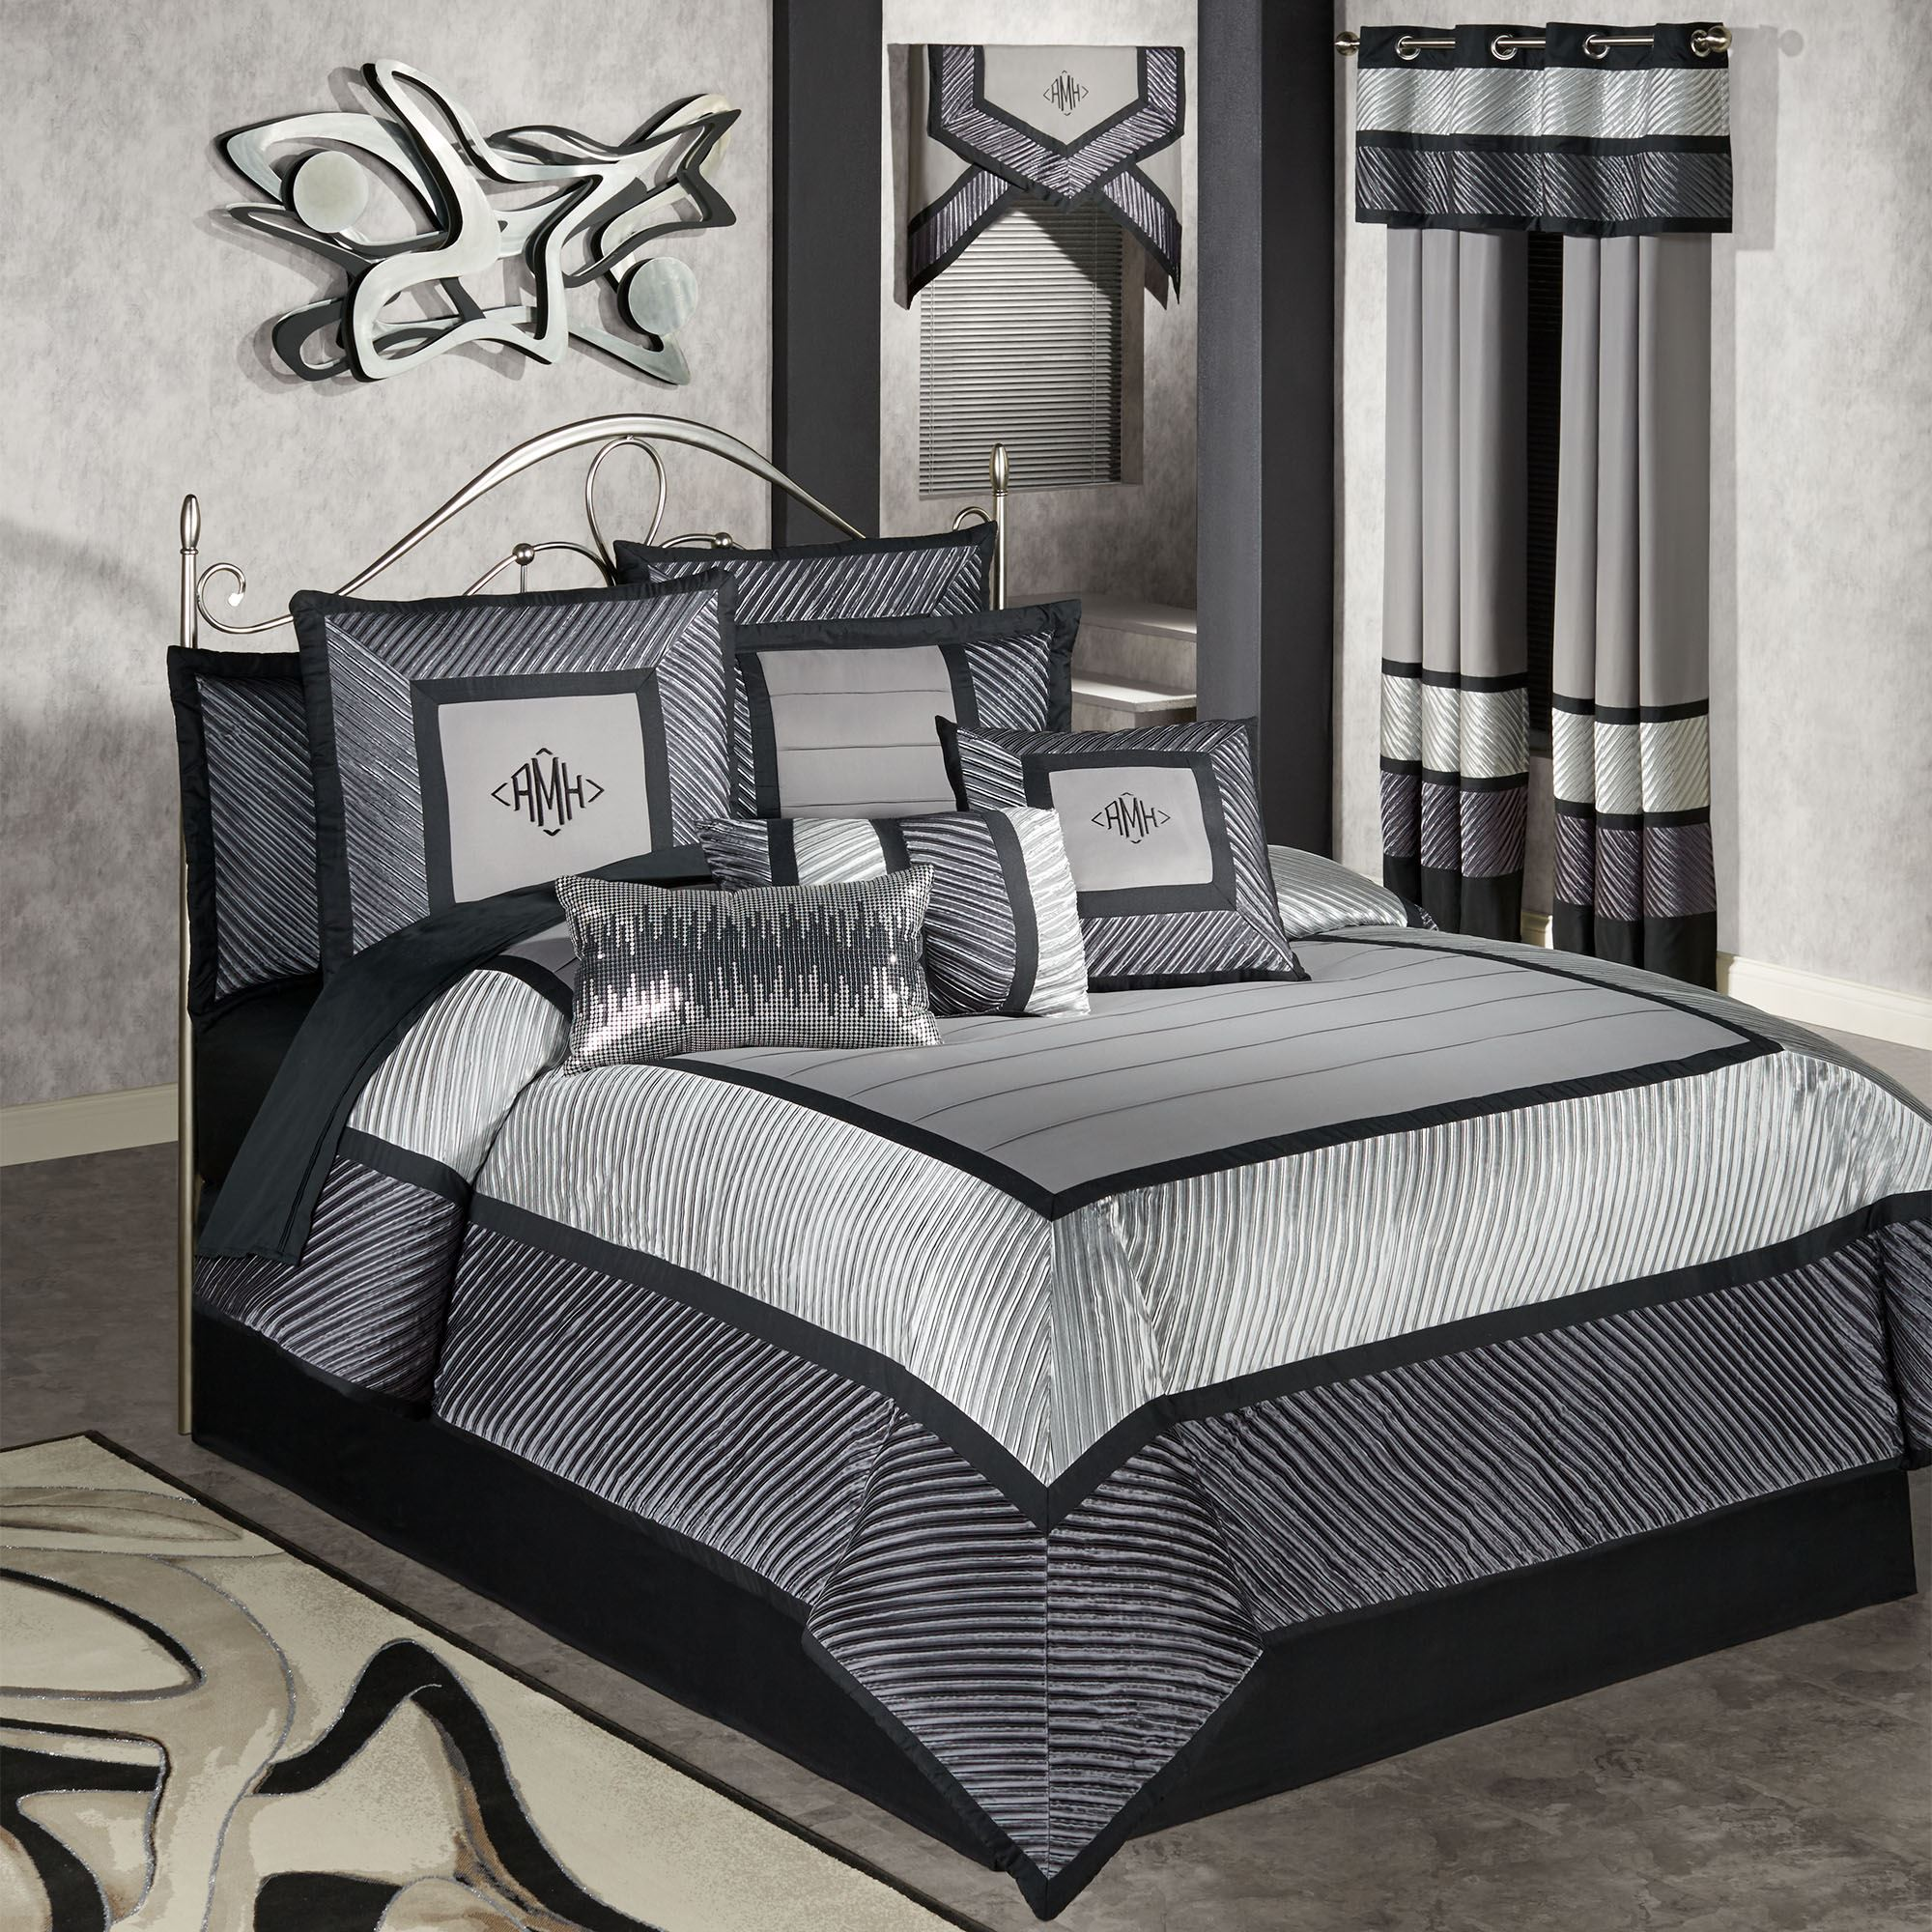 the comforter wanted bedding get accessorizing sets you charcoal grey your dark look